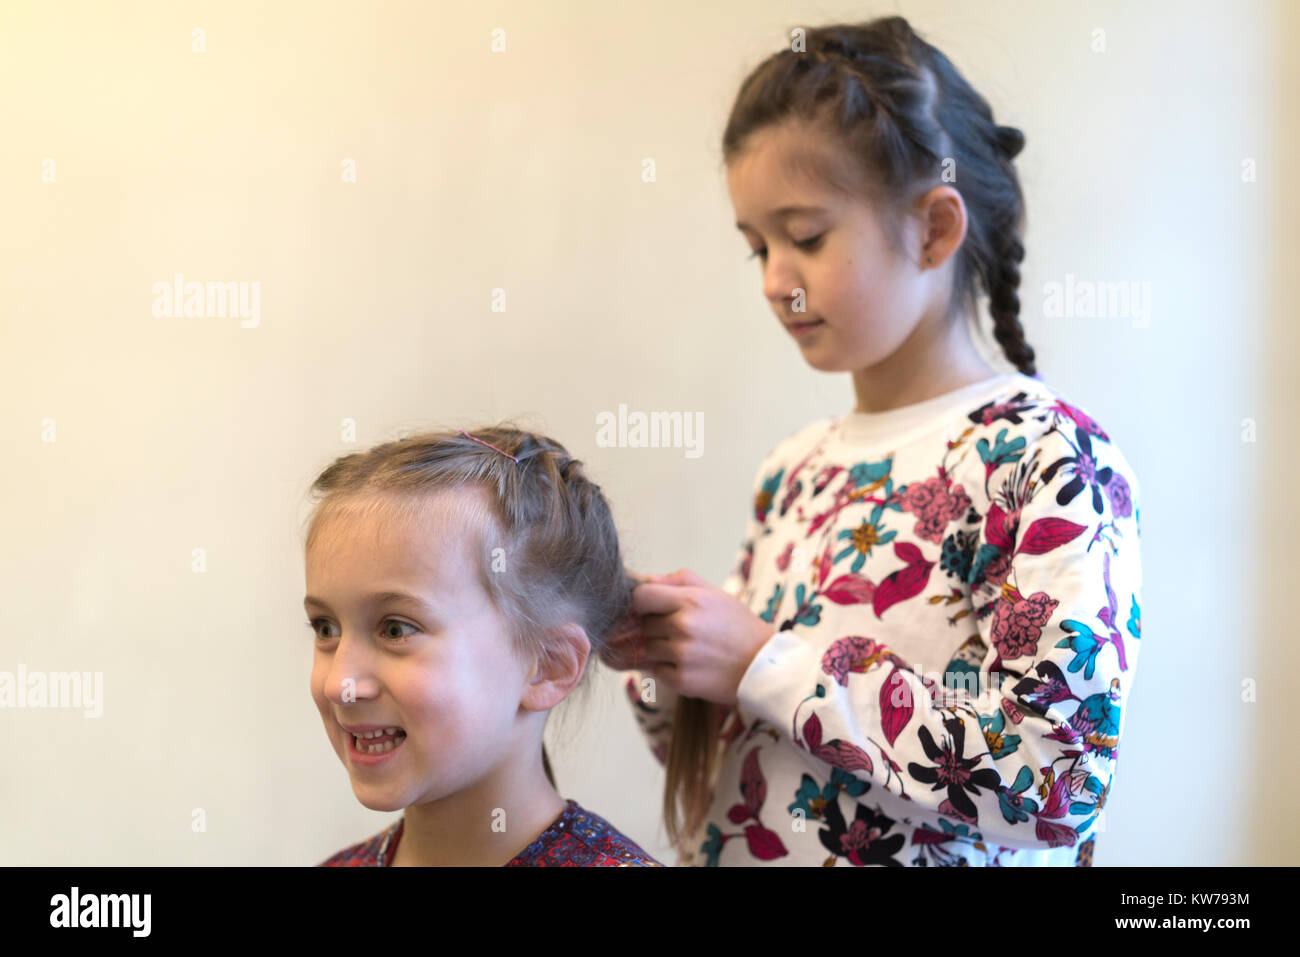 Little Girl Braids Her Sisters Hair Stock Photo 170420536 Alamy